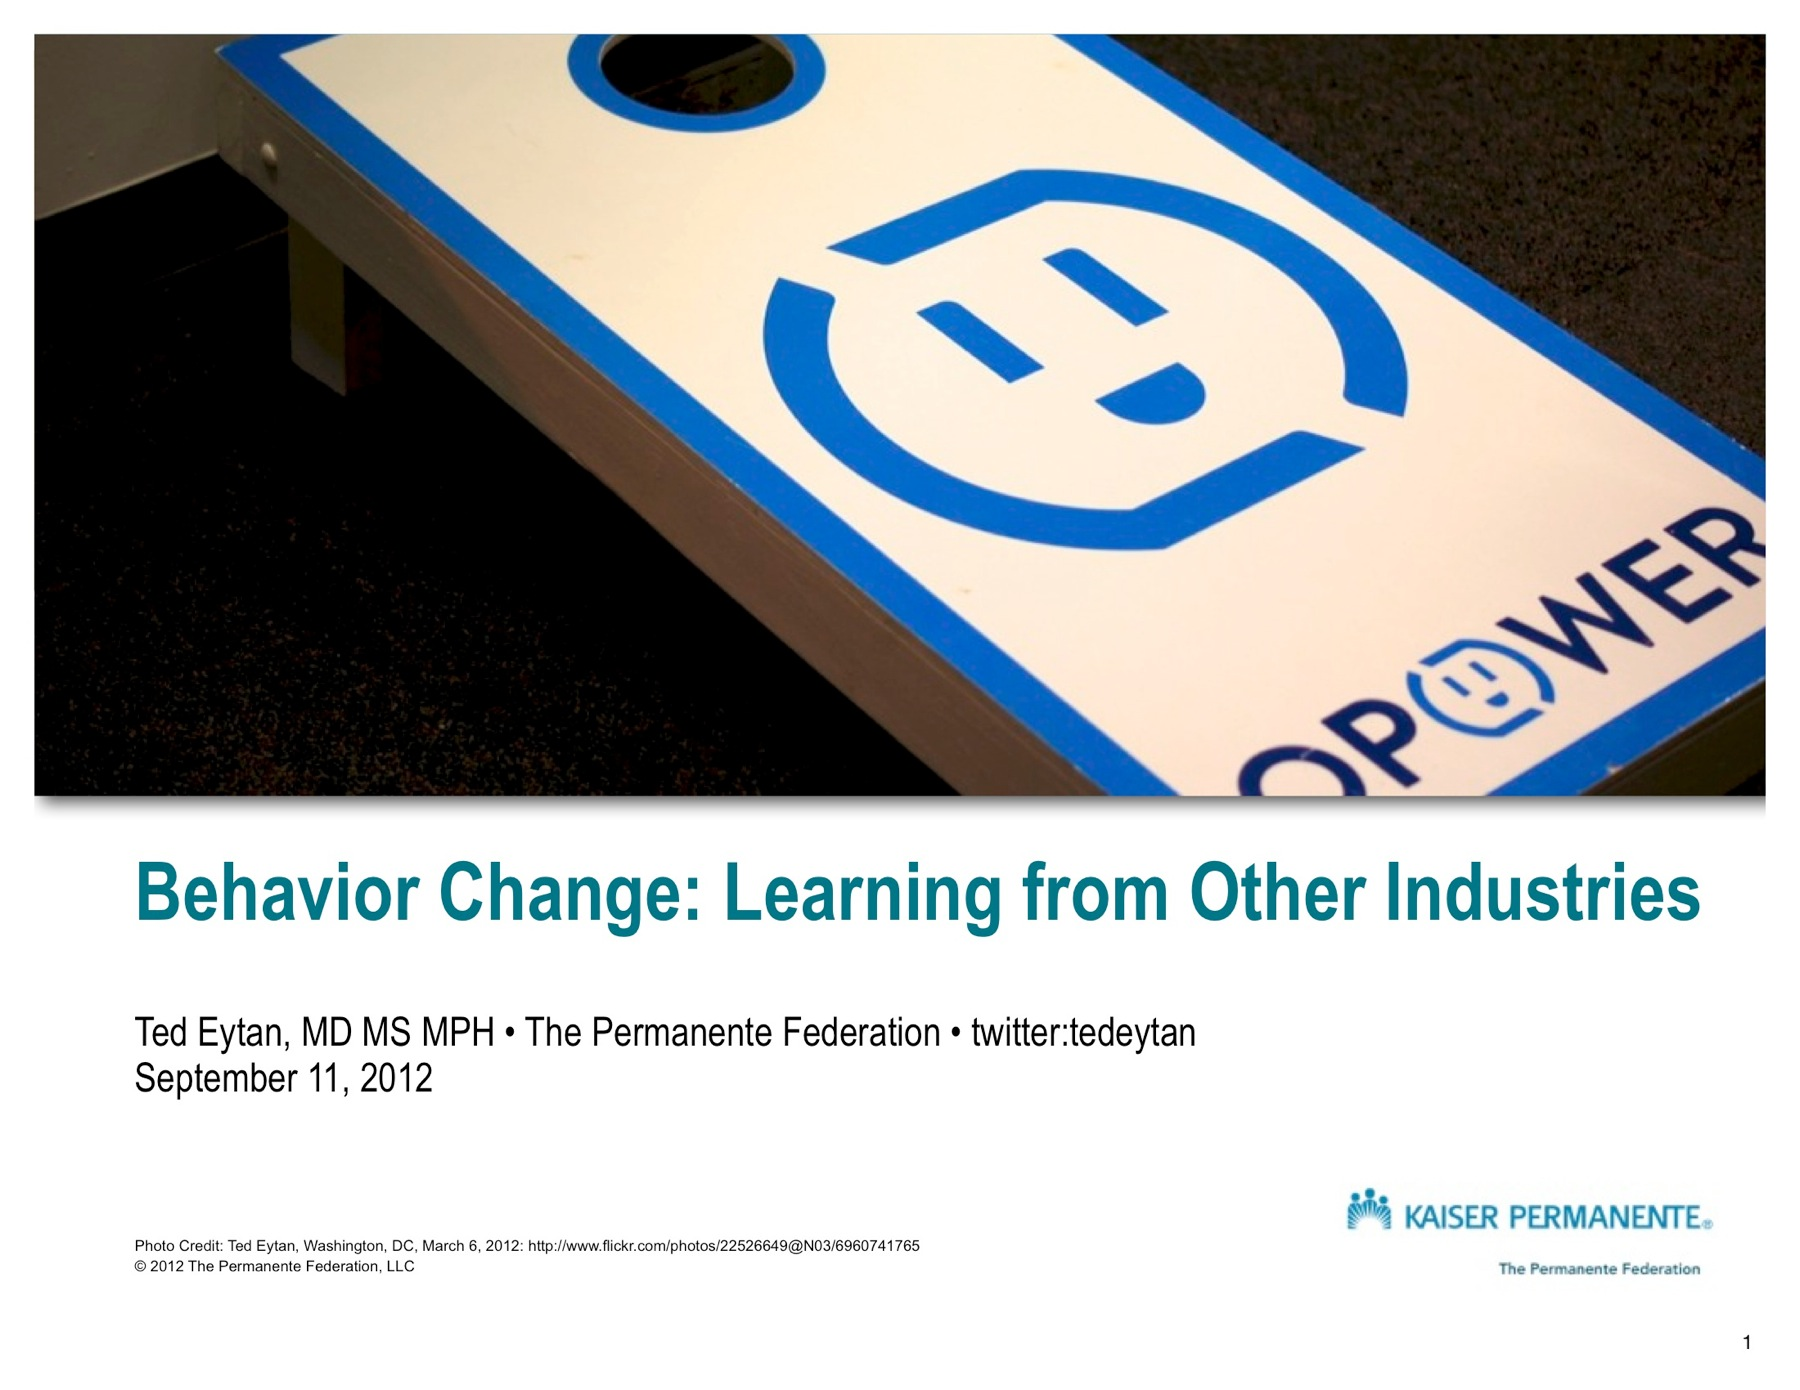 Behavior Change  Learning from Other Industries  Eytan 1